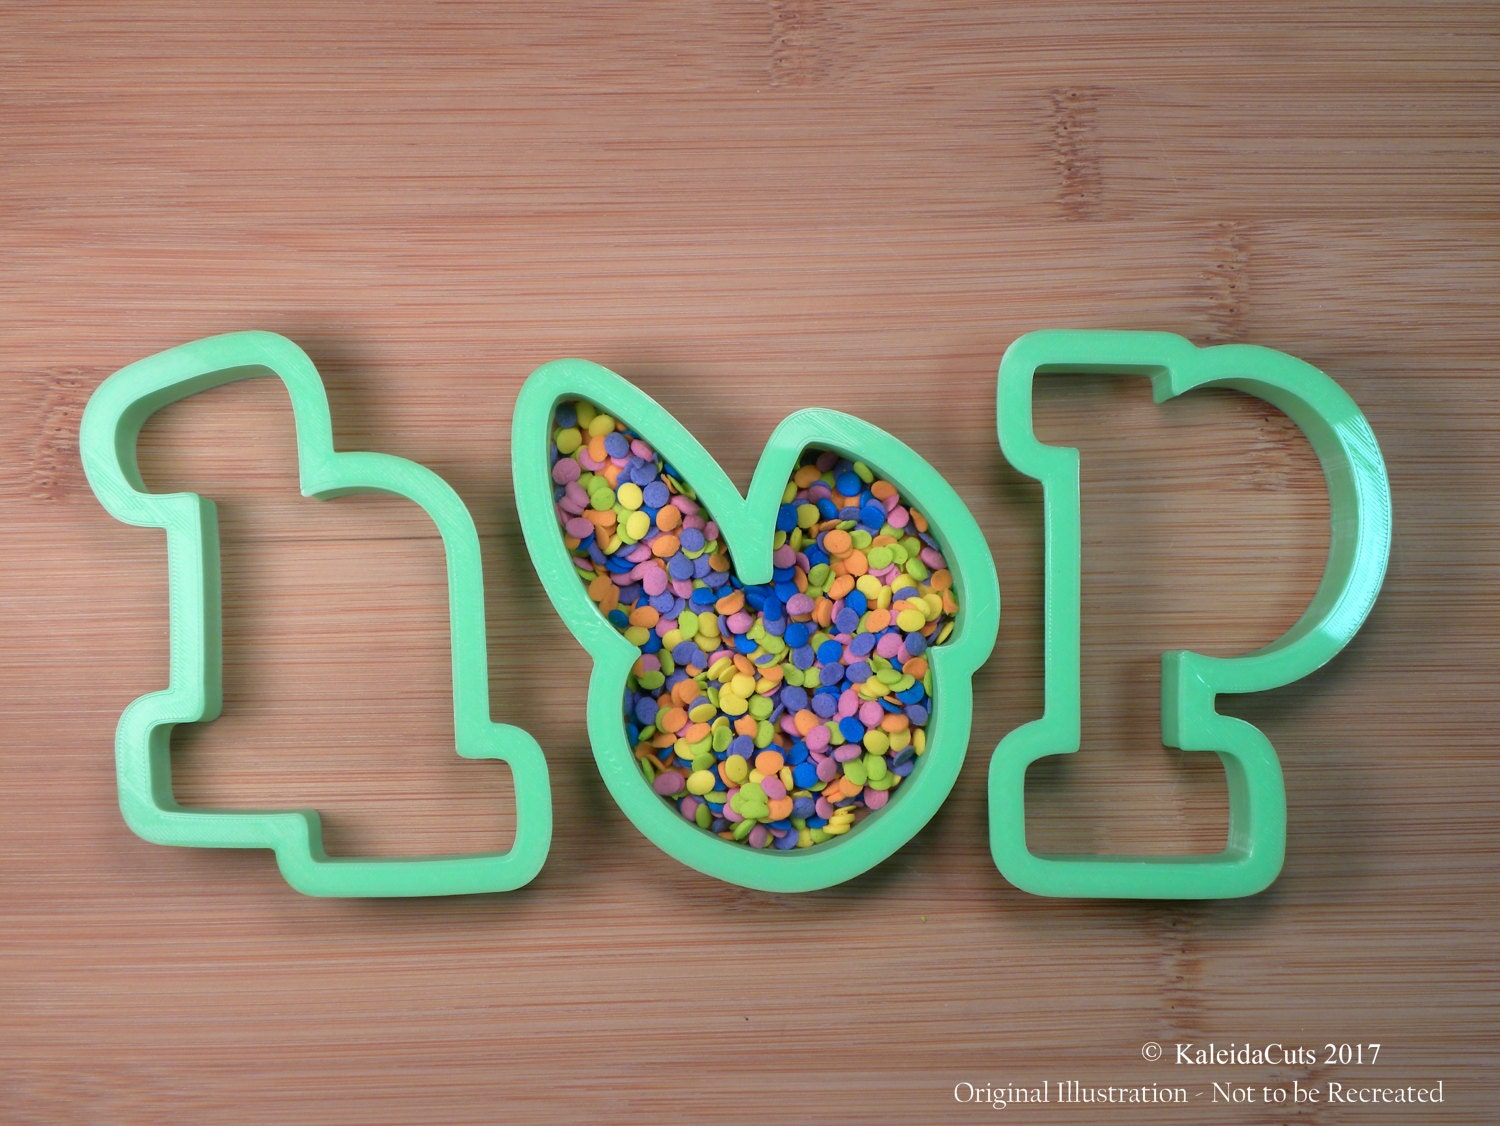 easter cookie cutter 3d printed bunny cookie cutter letter cookie cutters baking gifts fondant molds